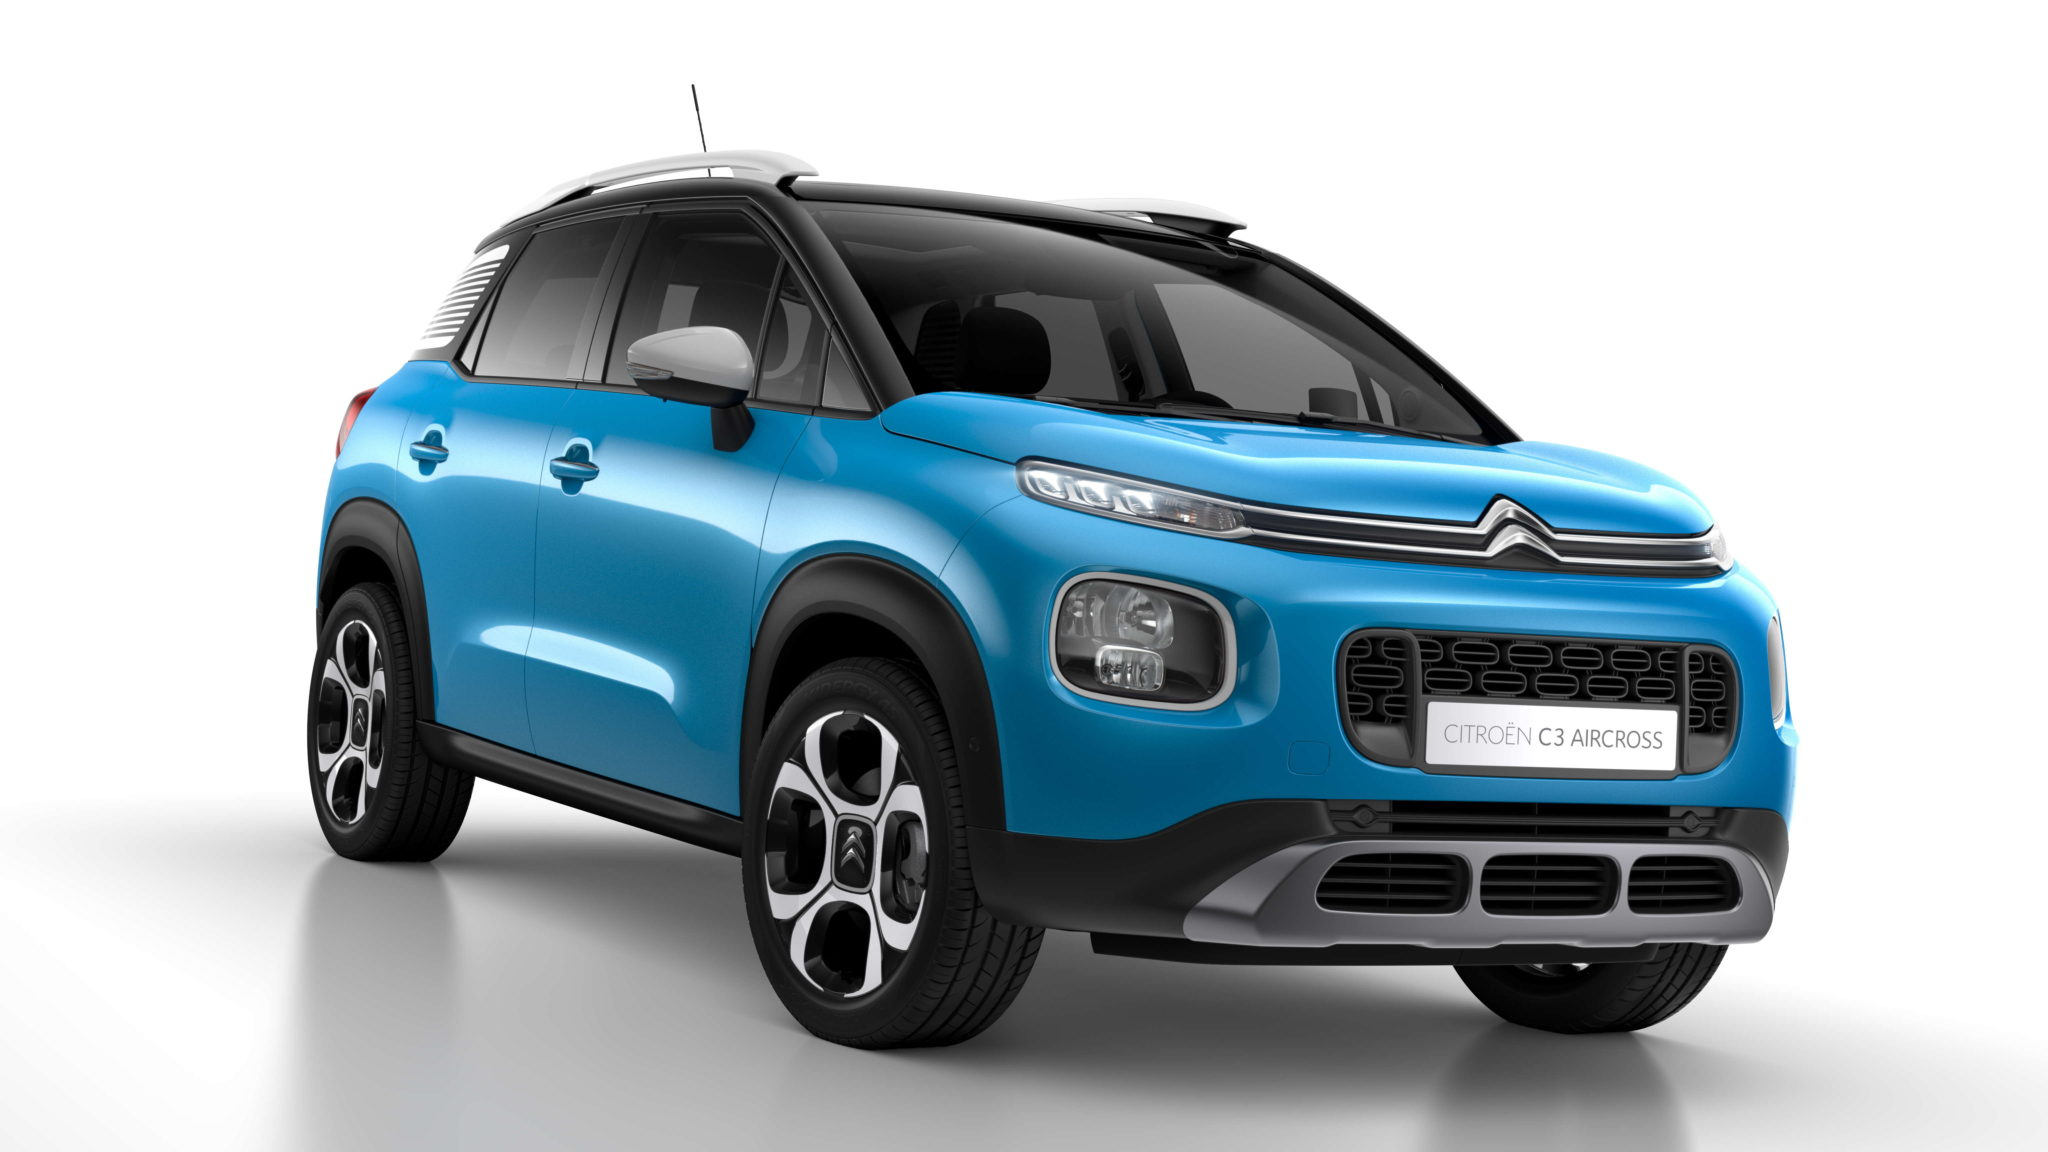 Citroen C3 Aircross o similar